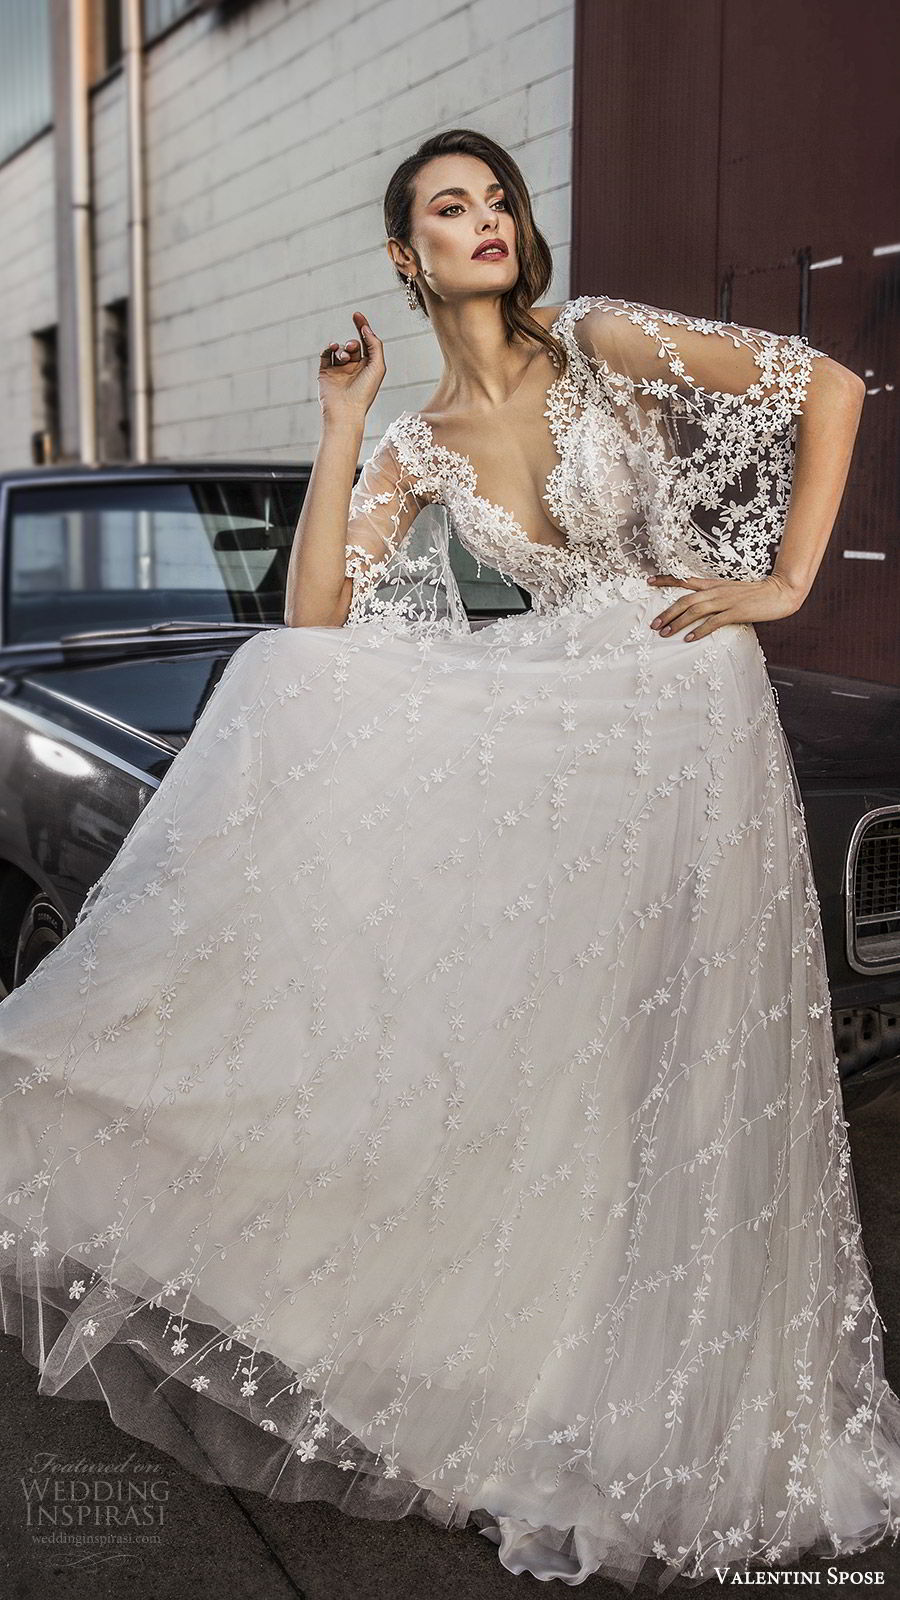 valentini spose spring 2020 bridal sheer flutter sleeves v neck fully embroidered lace a line ball gown wedding dress (1) romantic boho mv